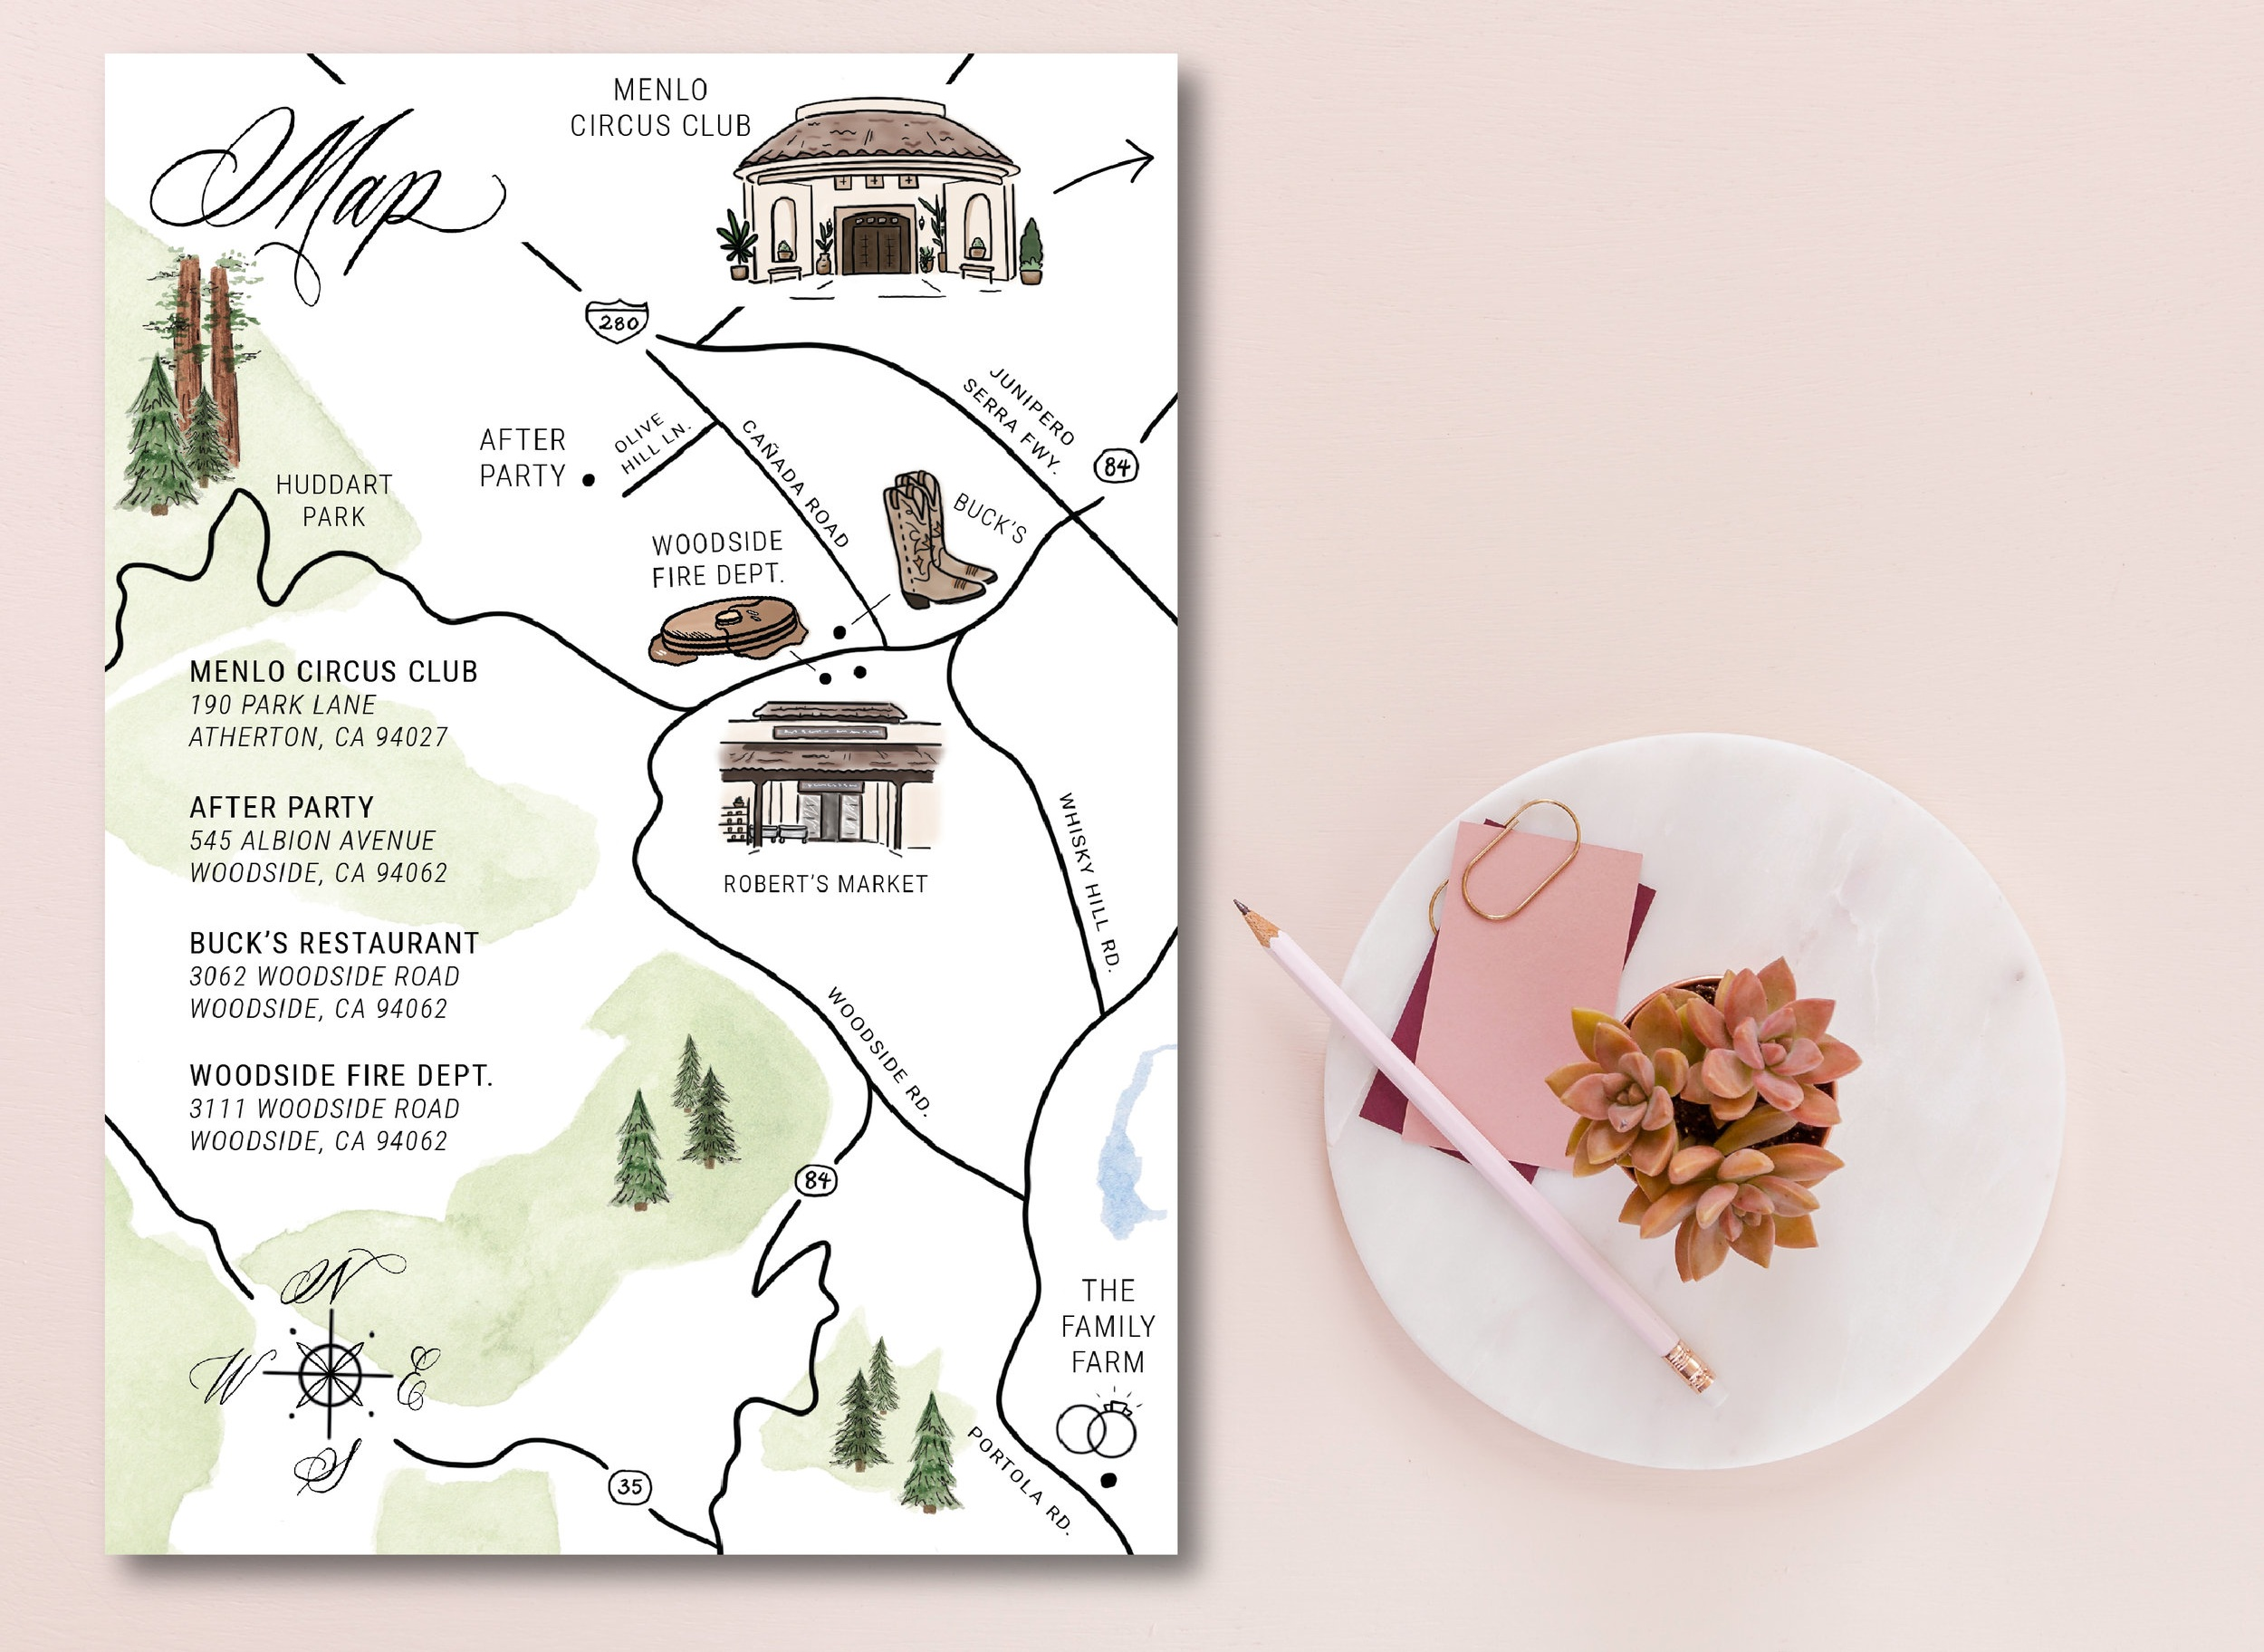 this custom wedding map was for a woodside, ca wedding! It featured all the key spots for the wedding weekend, as well as a few fun additional details (like places in her hometown that the bride loveD).